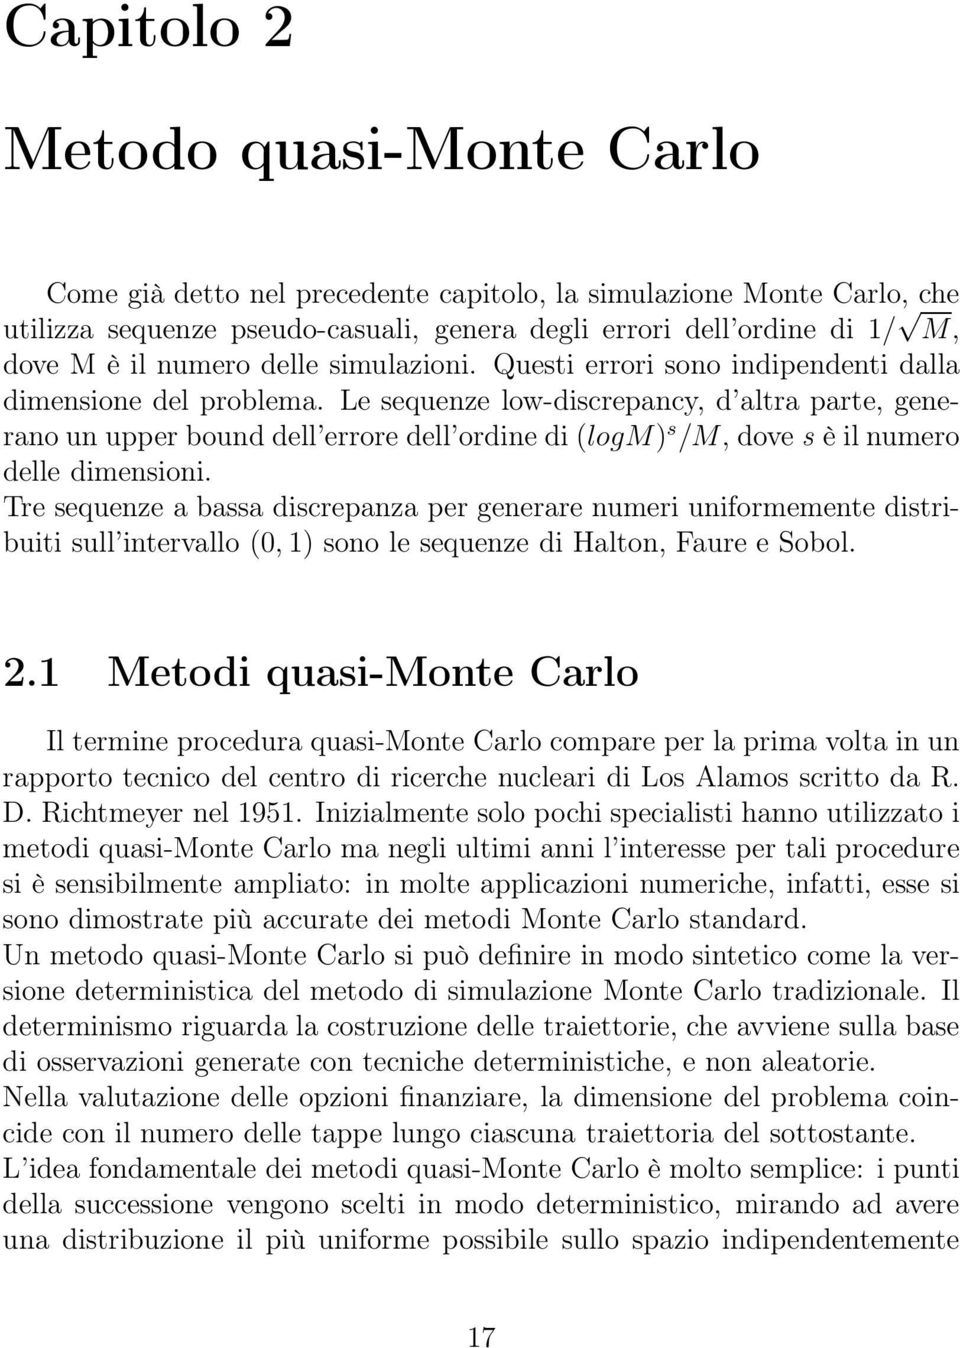 Le sequenze low-discrepancy, d altra parte, generano un upper bound dell errore dell ordine di (logm) s /M, dove s è il numero delle dimensioni.